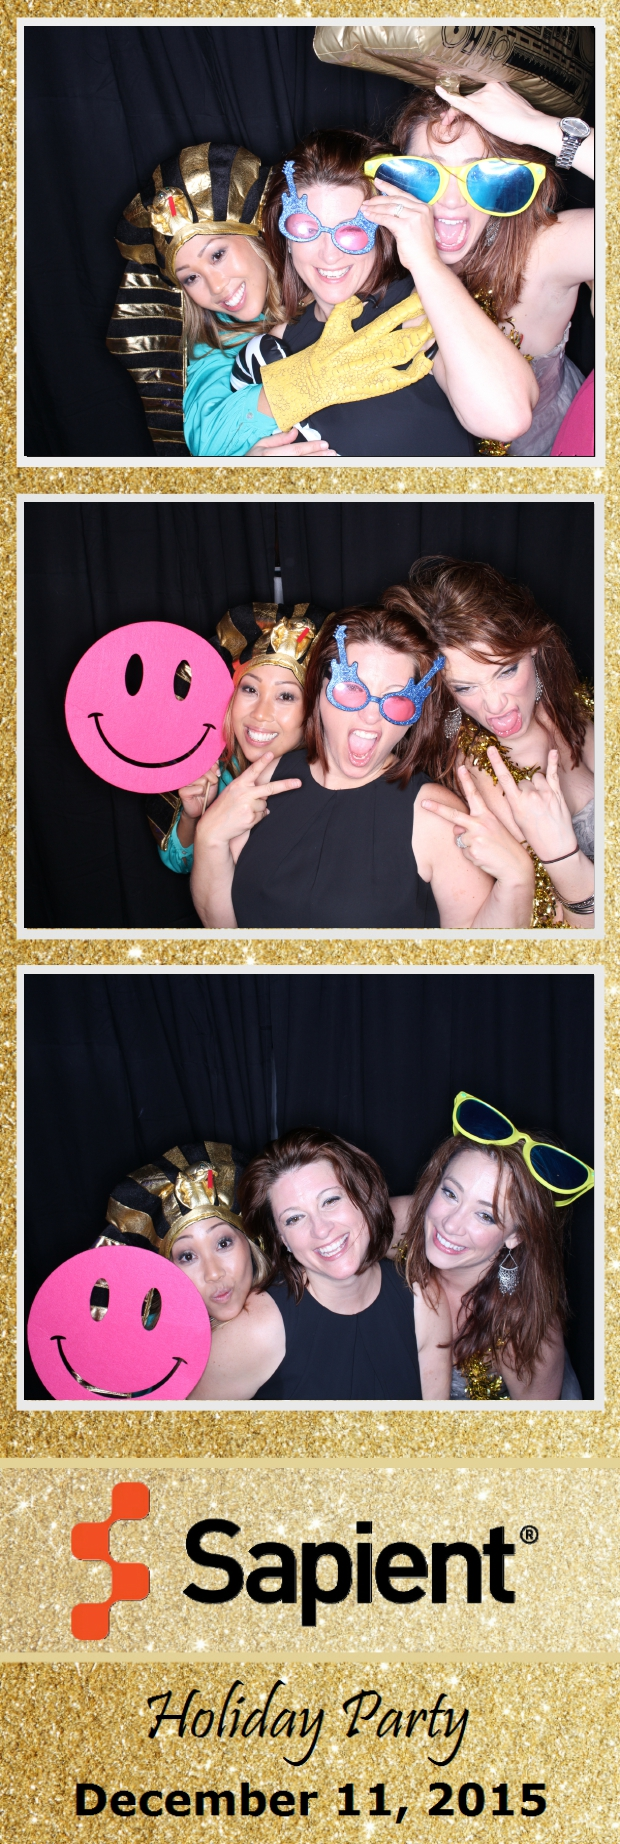 Guest House Events Photo Booth Sapient Holiday Party (83).jpg